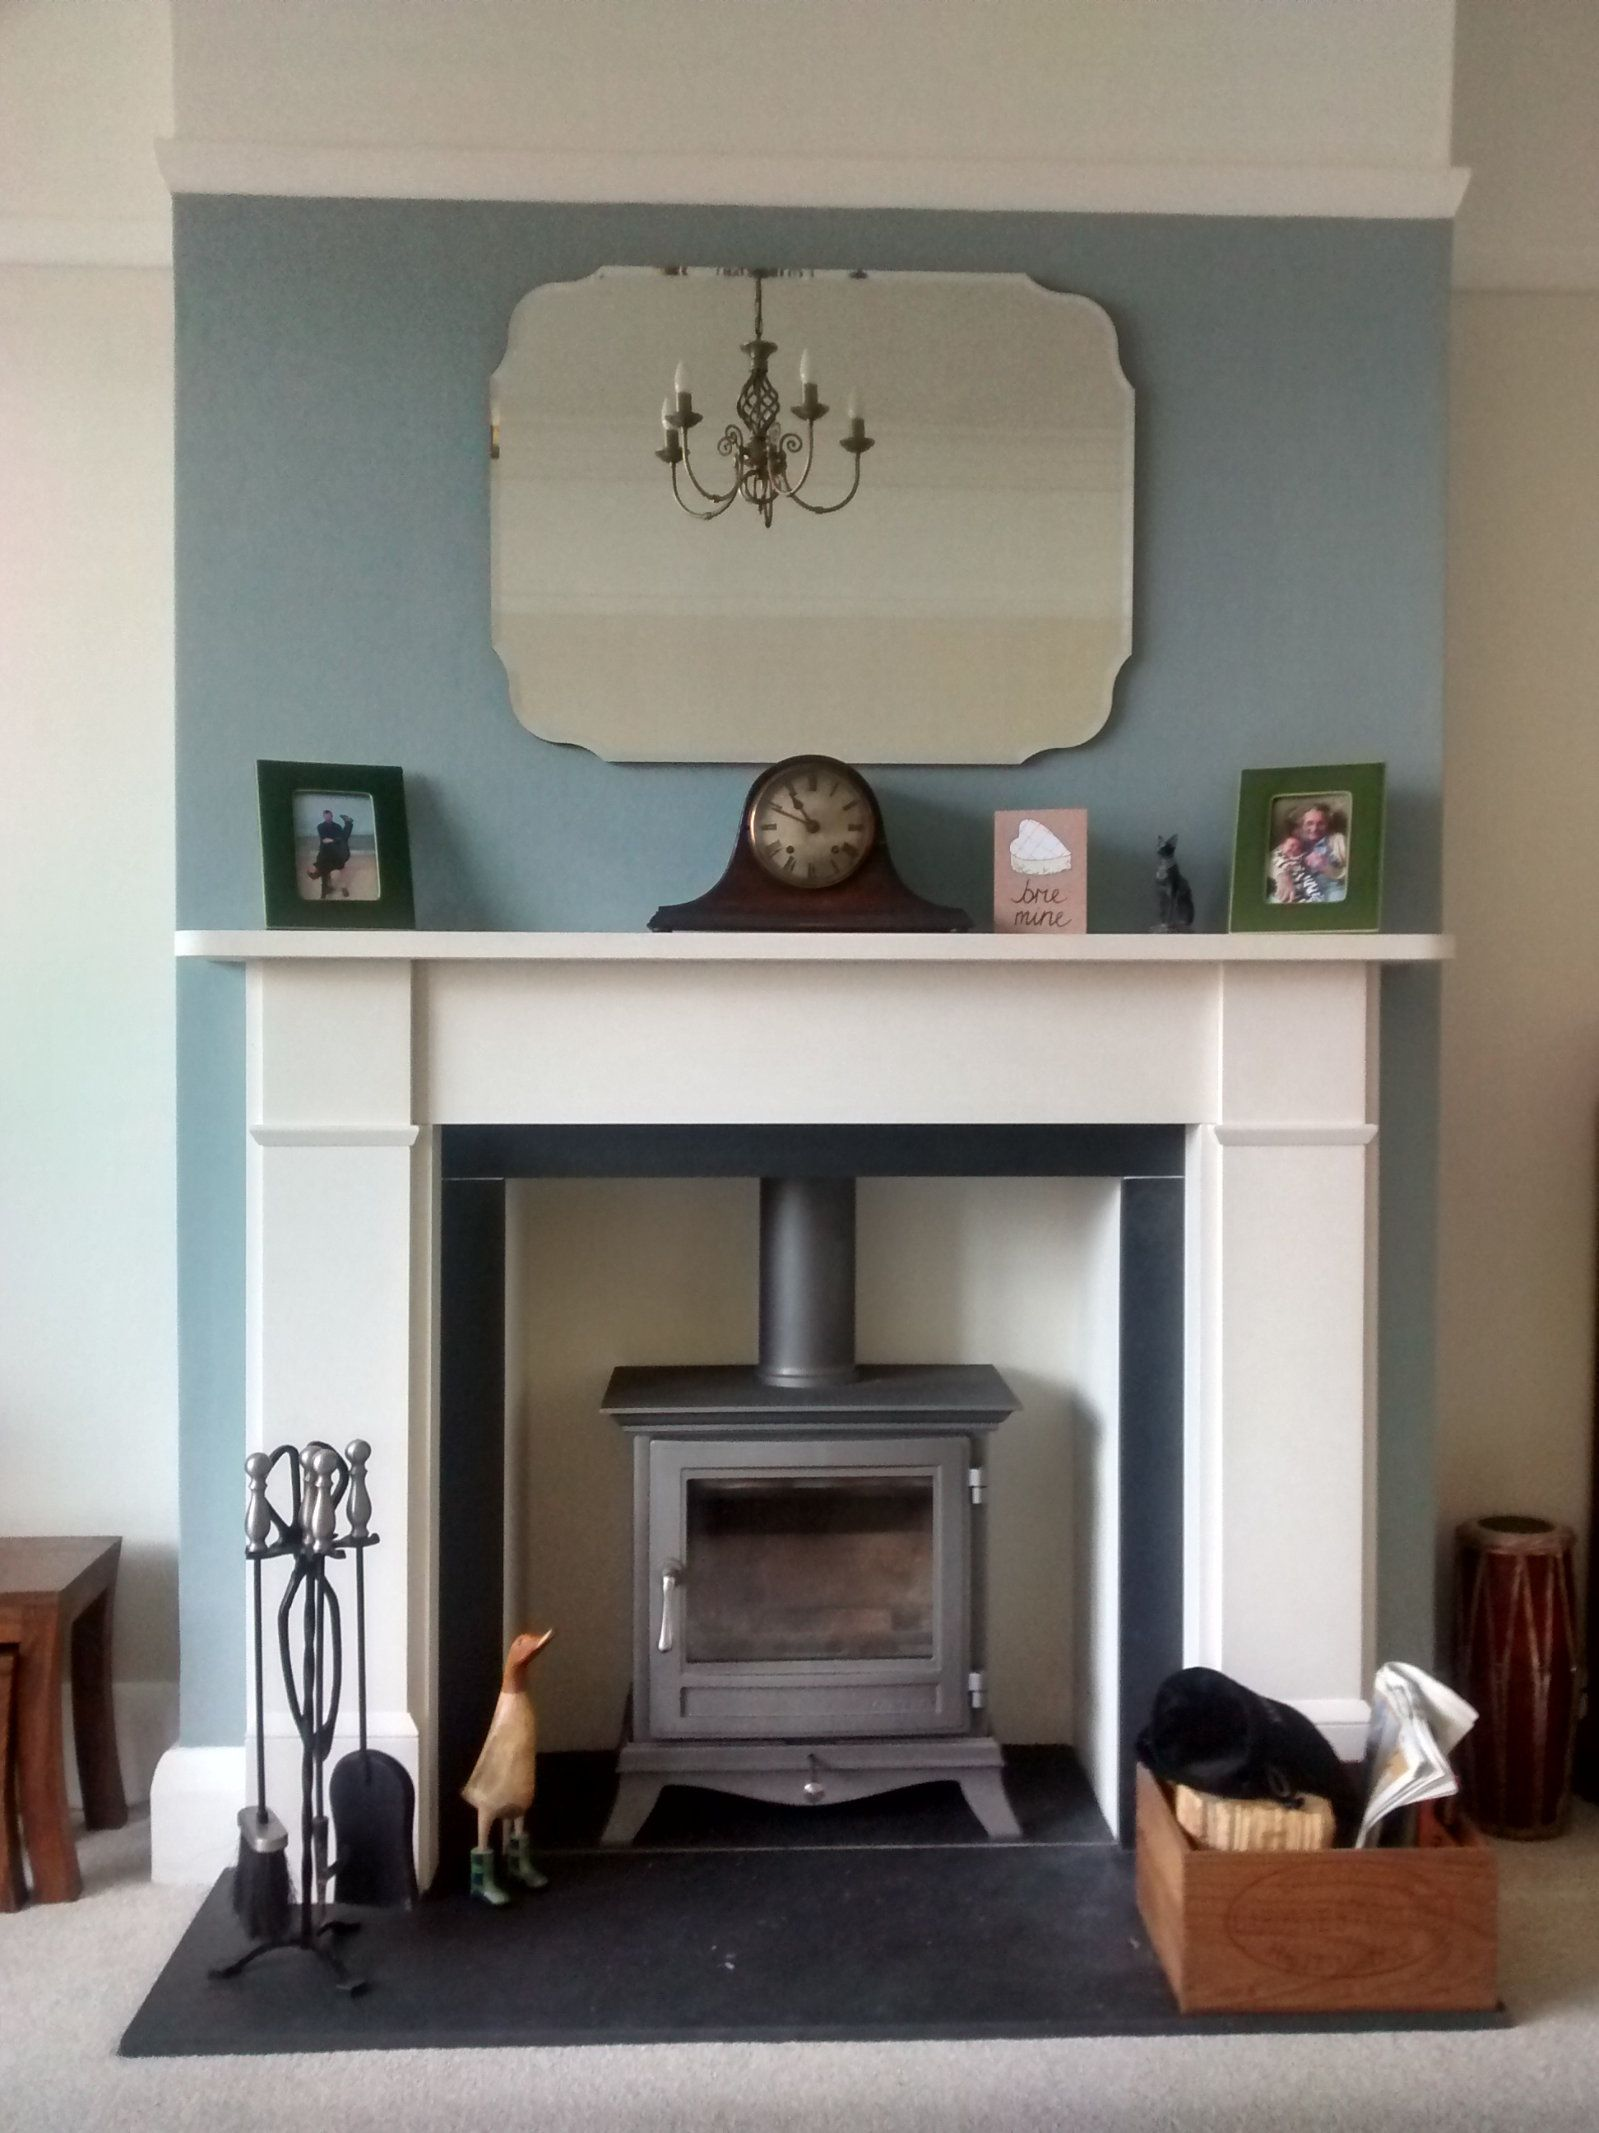 Tiled fireplace transformation heart woodburners hallwaysliving